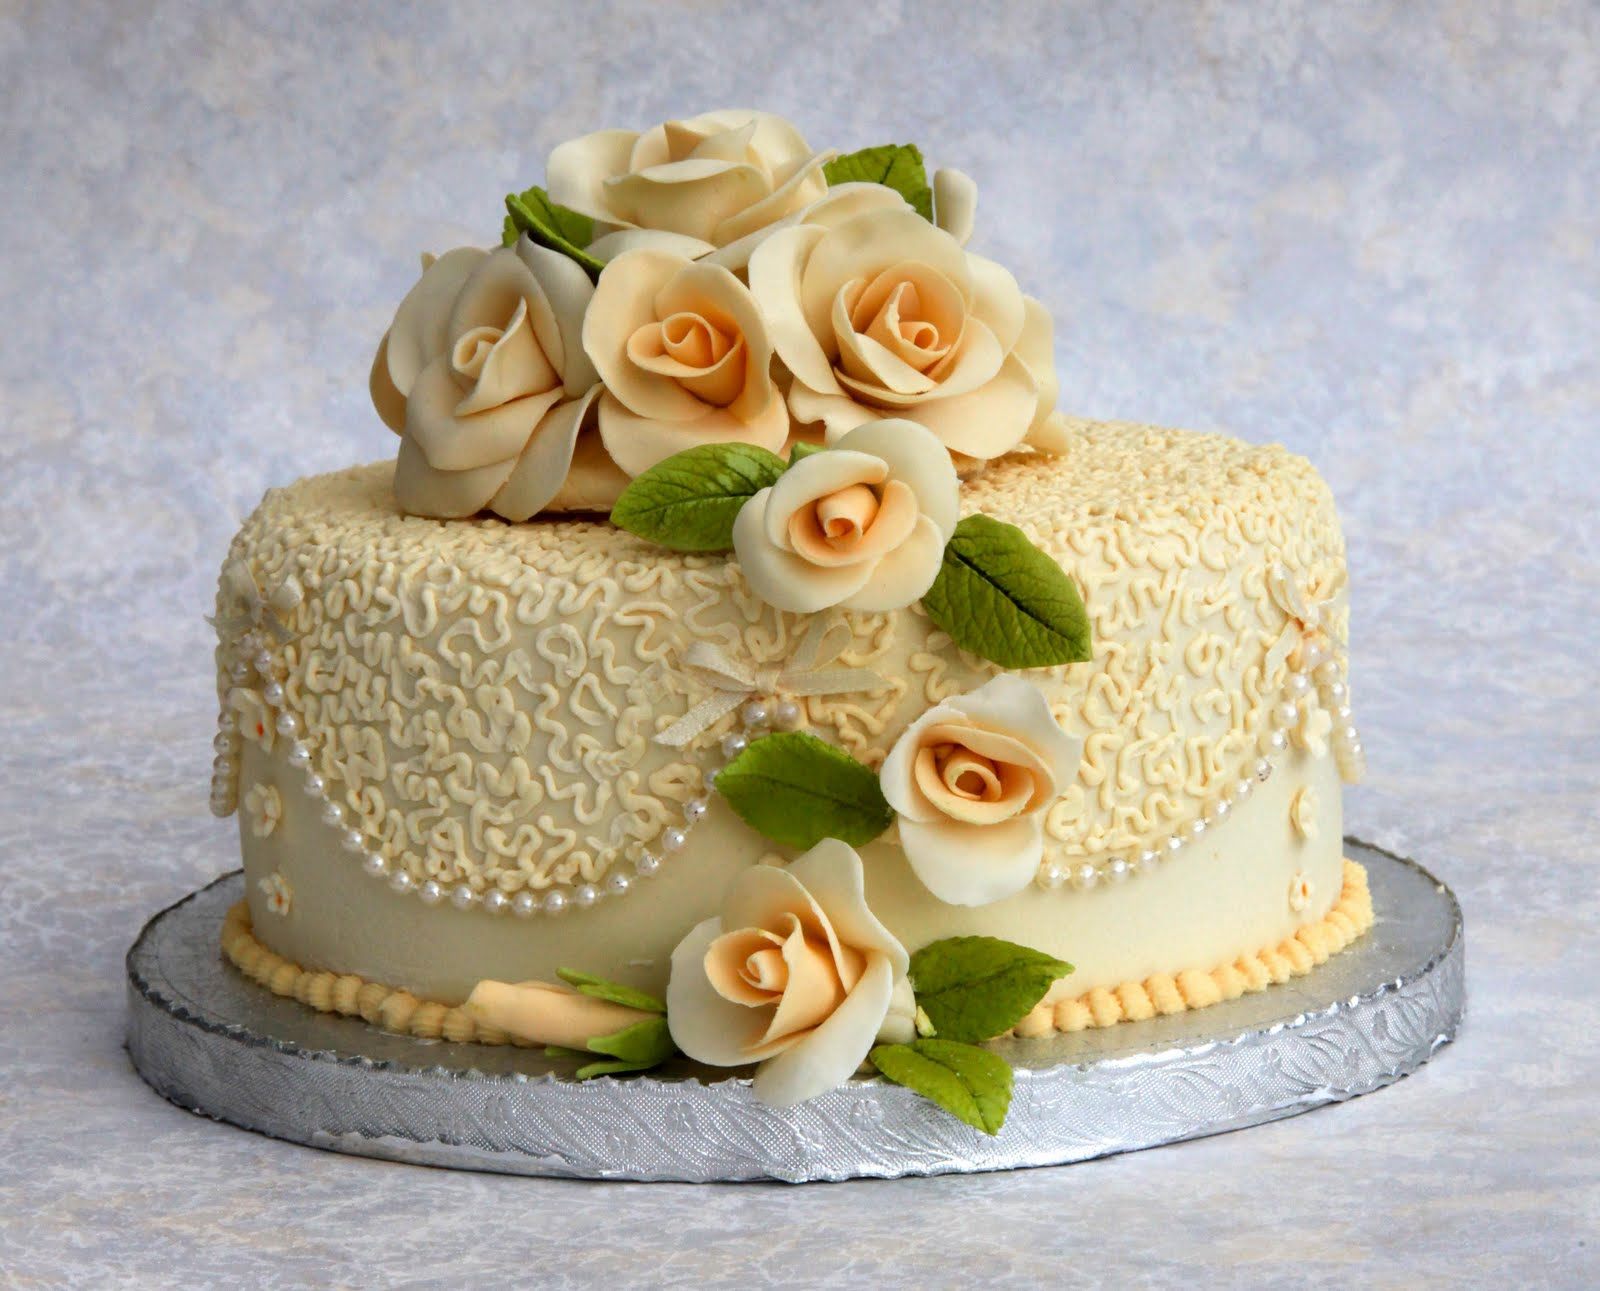 Cake Designs And Images : 25 Most Beautiful Cake Selections - Page 4 of 25